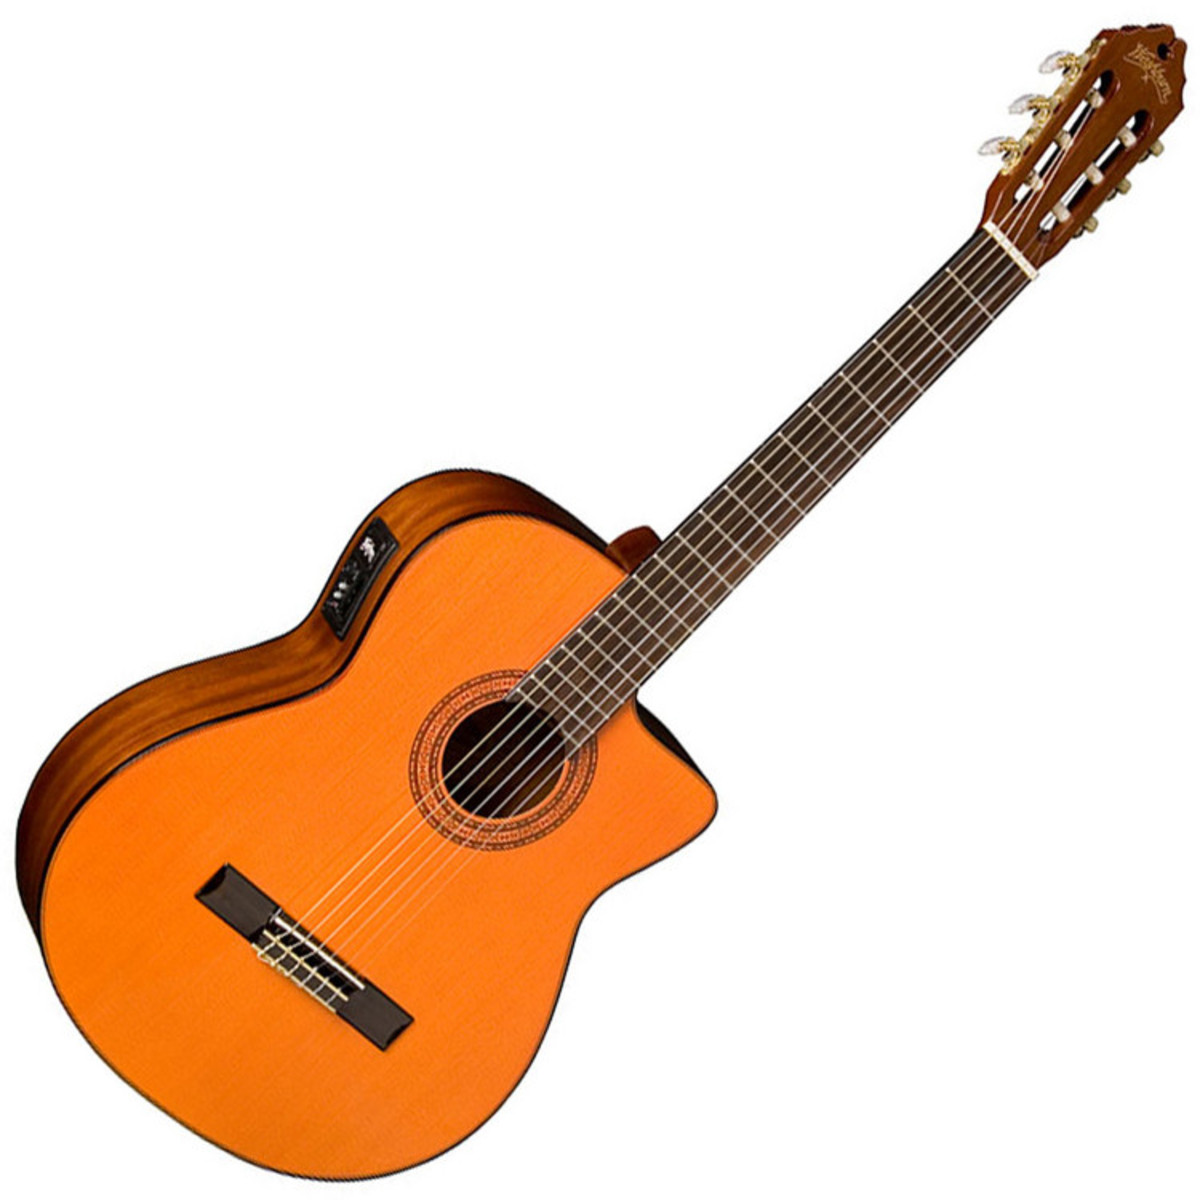 washburn c5ce classical nylon string electro acoustic guitar natural at. Black Bedroom Furniture Sets. Home Design Ideas